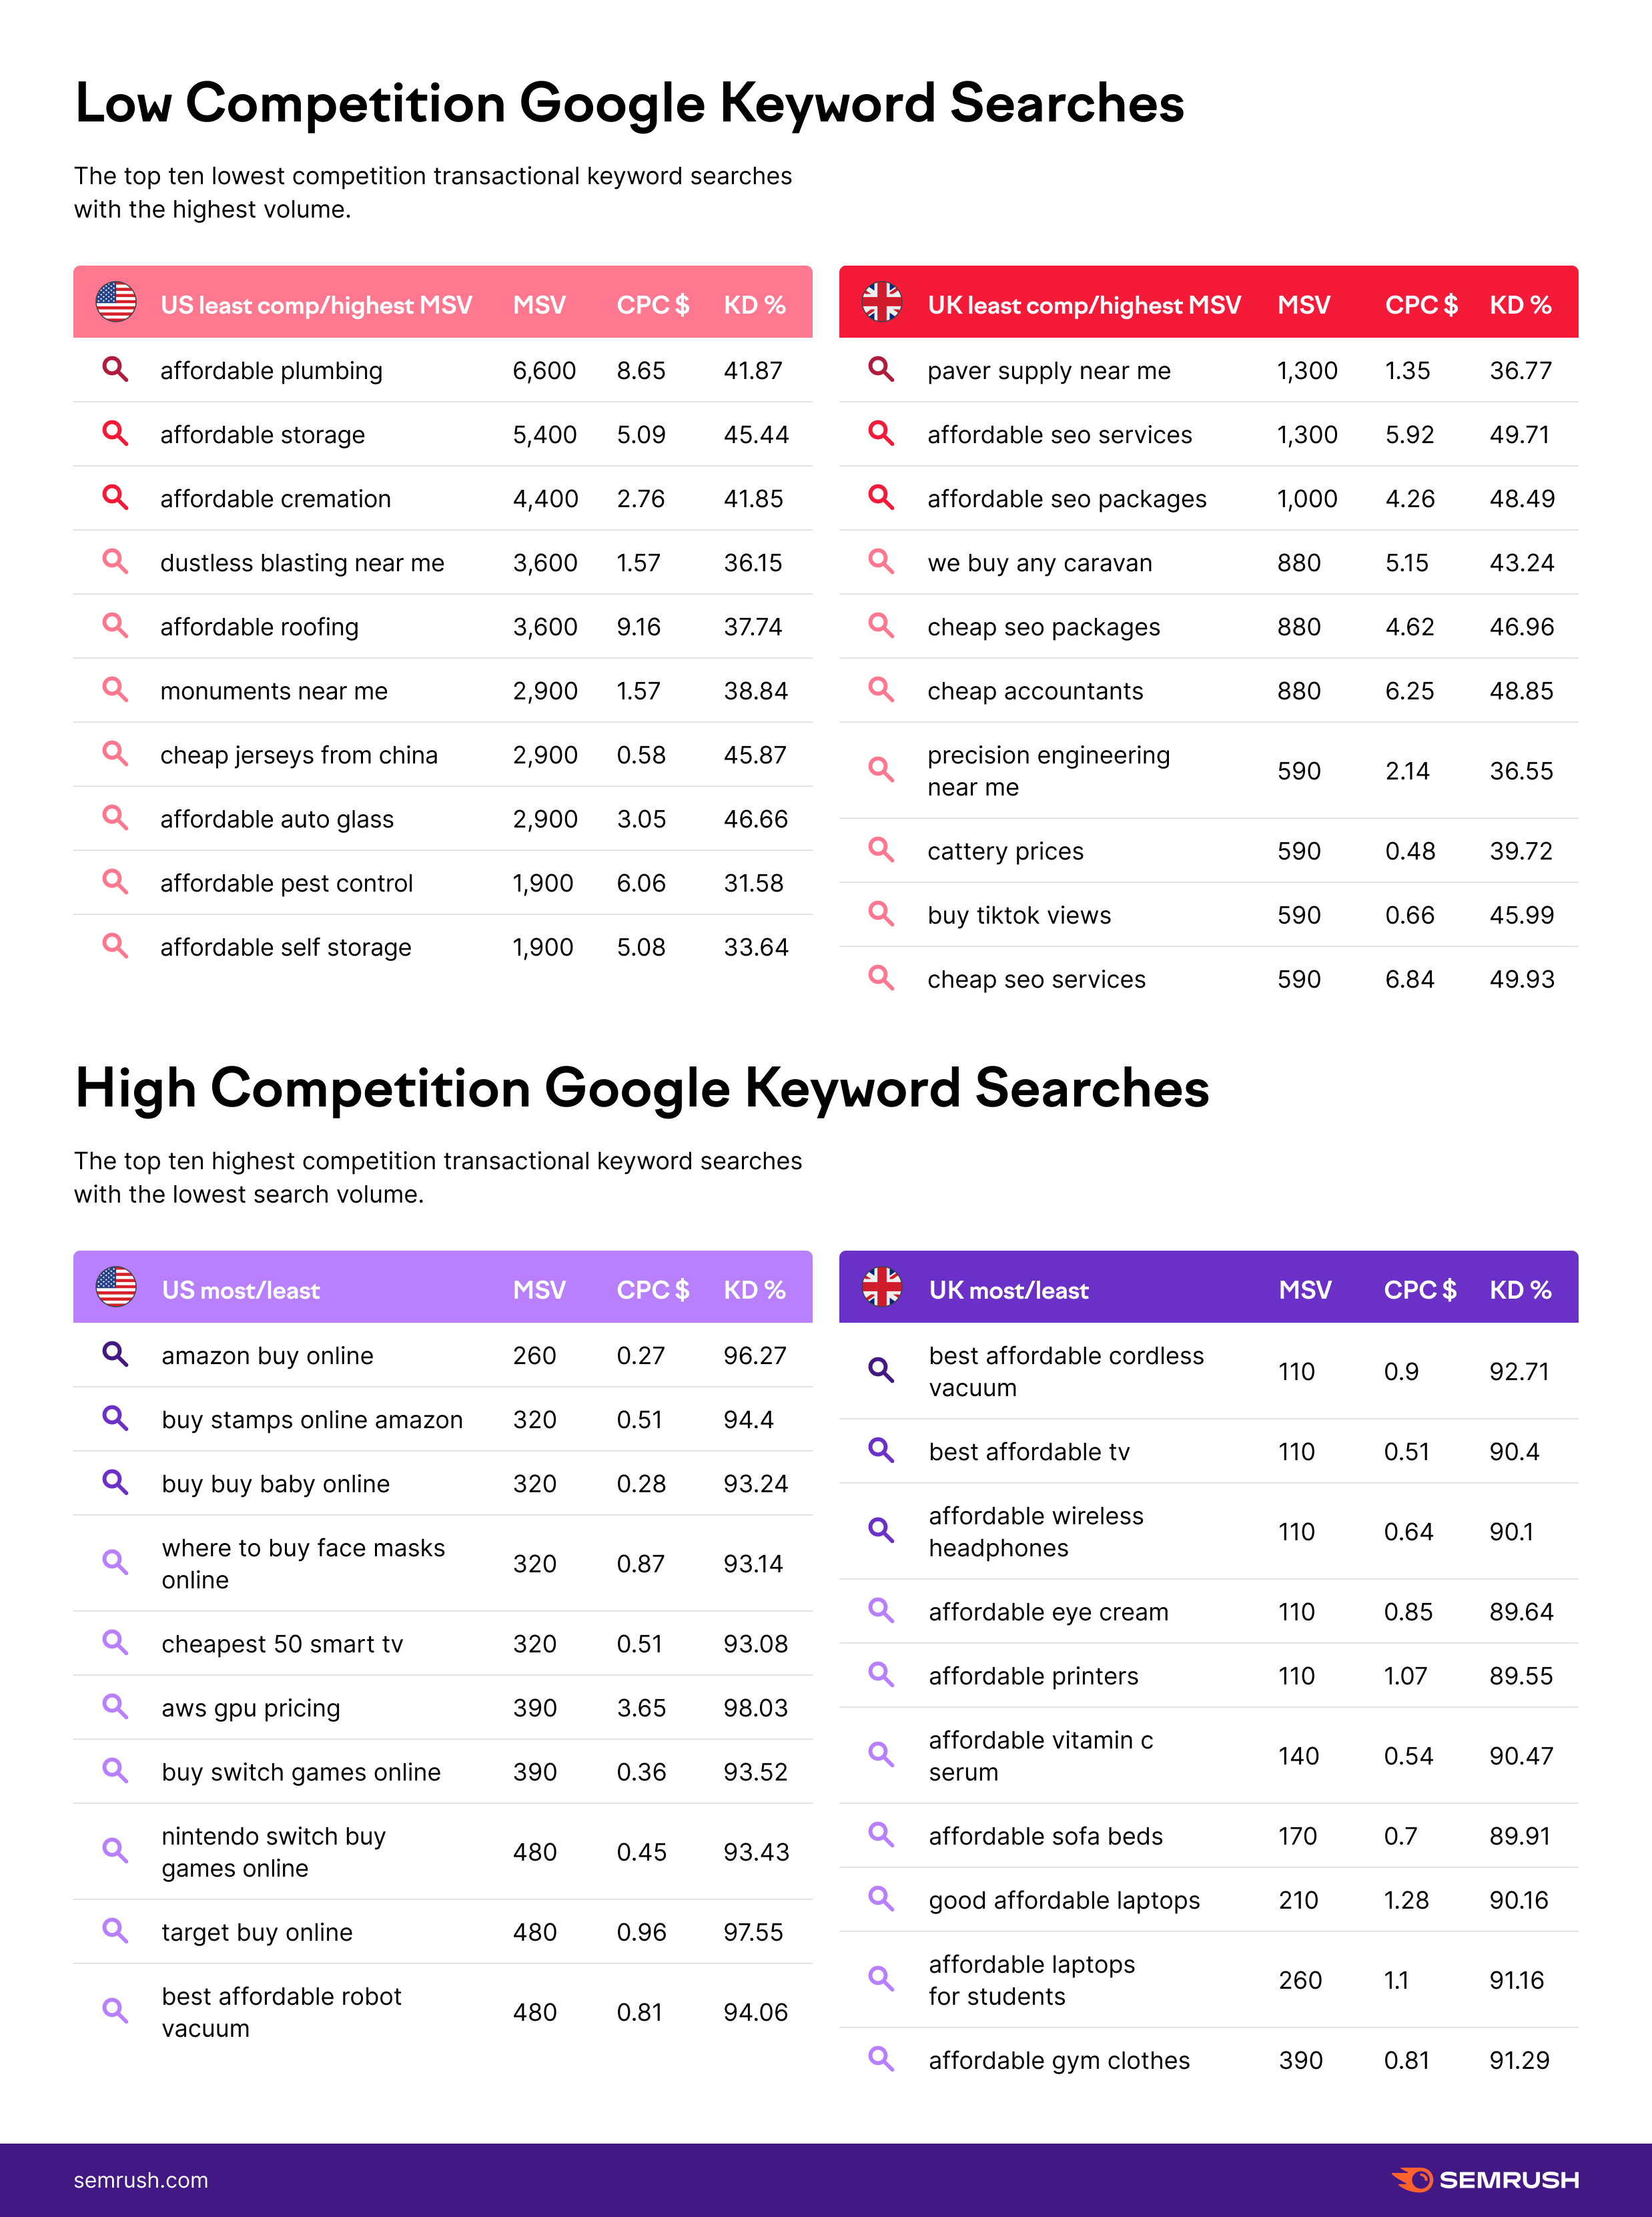 low and high competition keywords infographic for US and UK